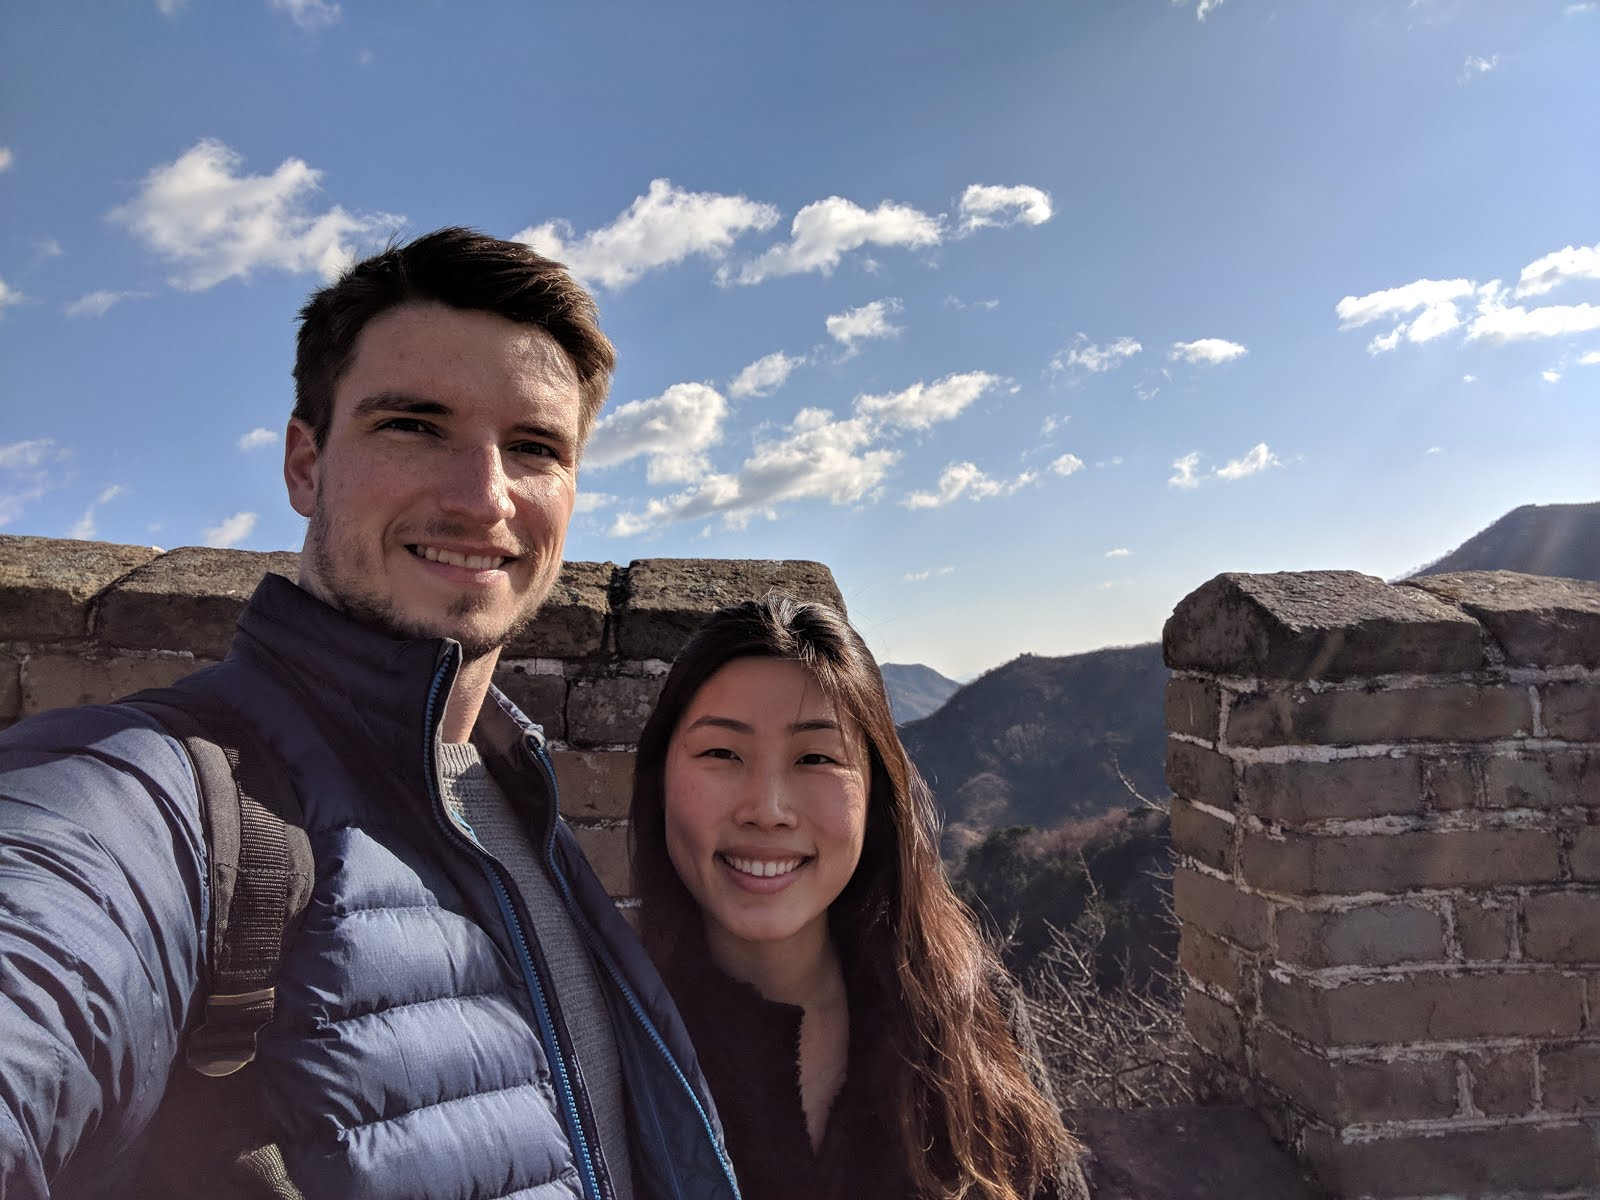 BEIJING, CHINA2017 - We visited The Great Wall of China during the off-season months. A really serene and majestic sight to behold.